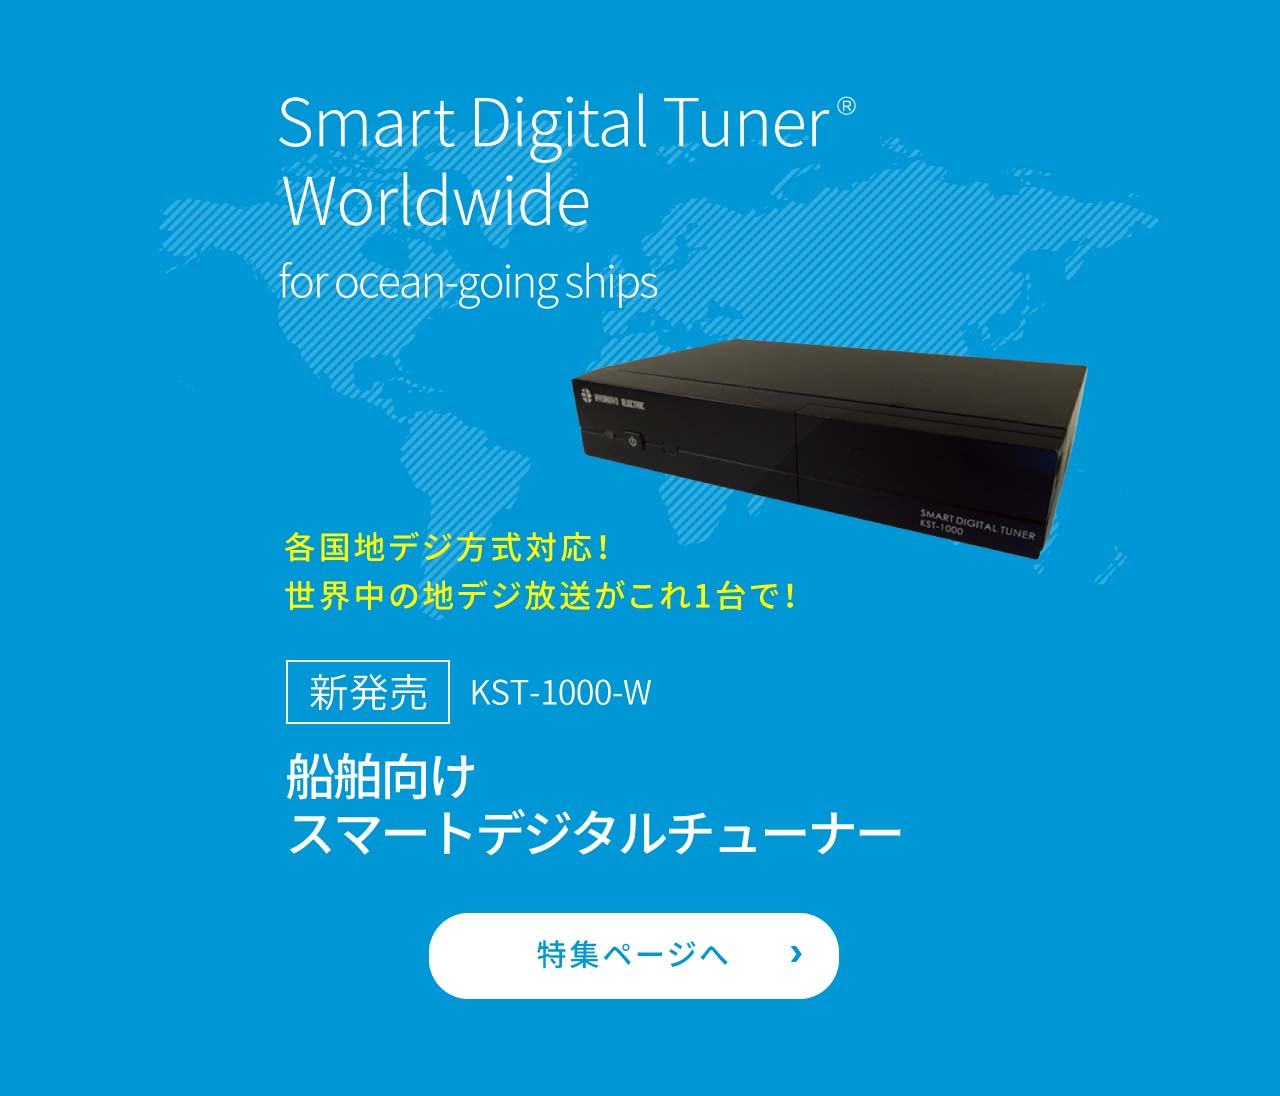 Smart Digital Tuner Worldwide for ocean-going ships Worldwide digital terrestrial TV receiver for ocean - going ships KST-1000-W Smart digital tuner for ships Feature page